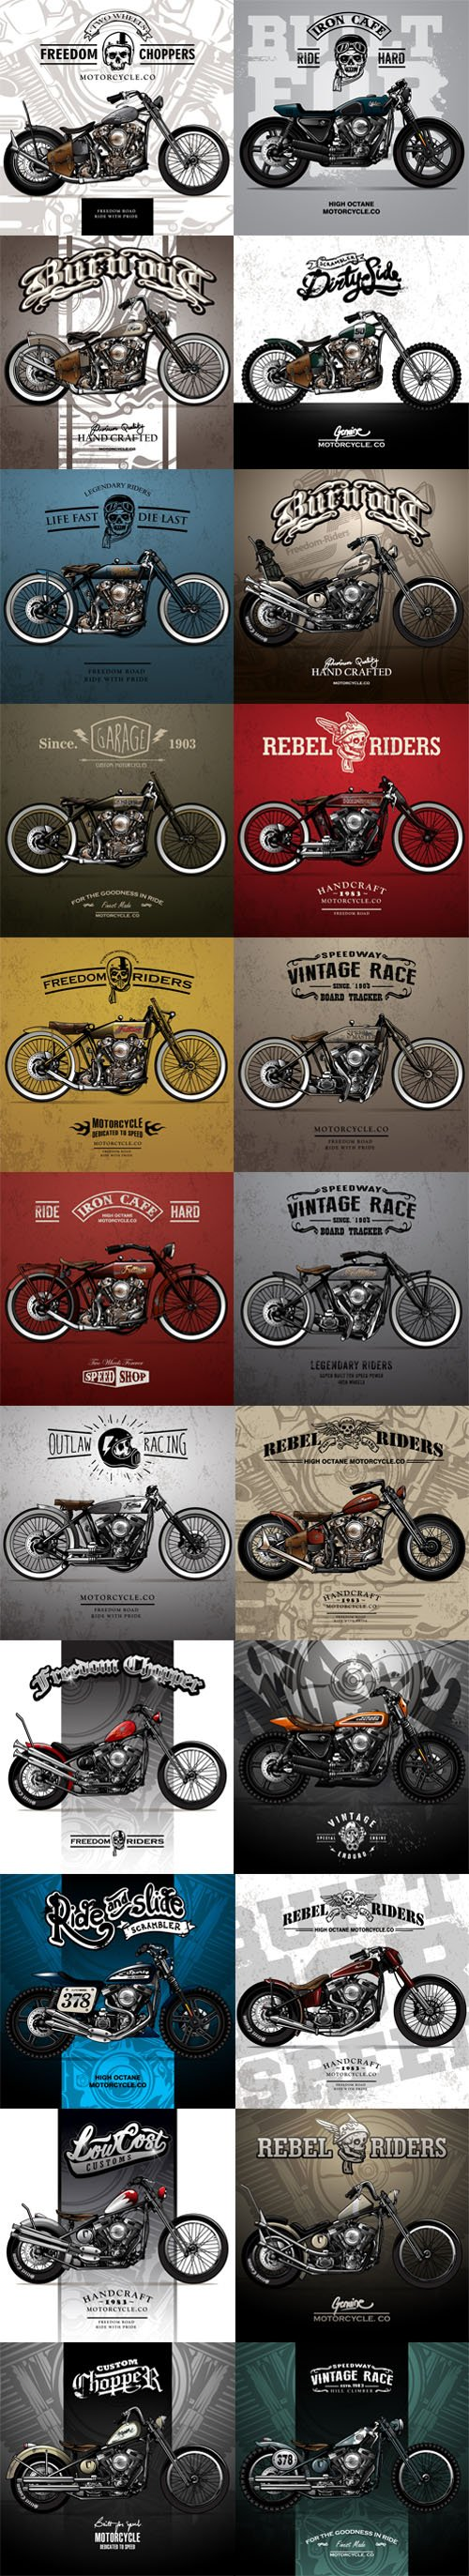 Motorcycle Posters Vector Collection